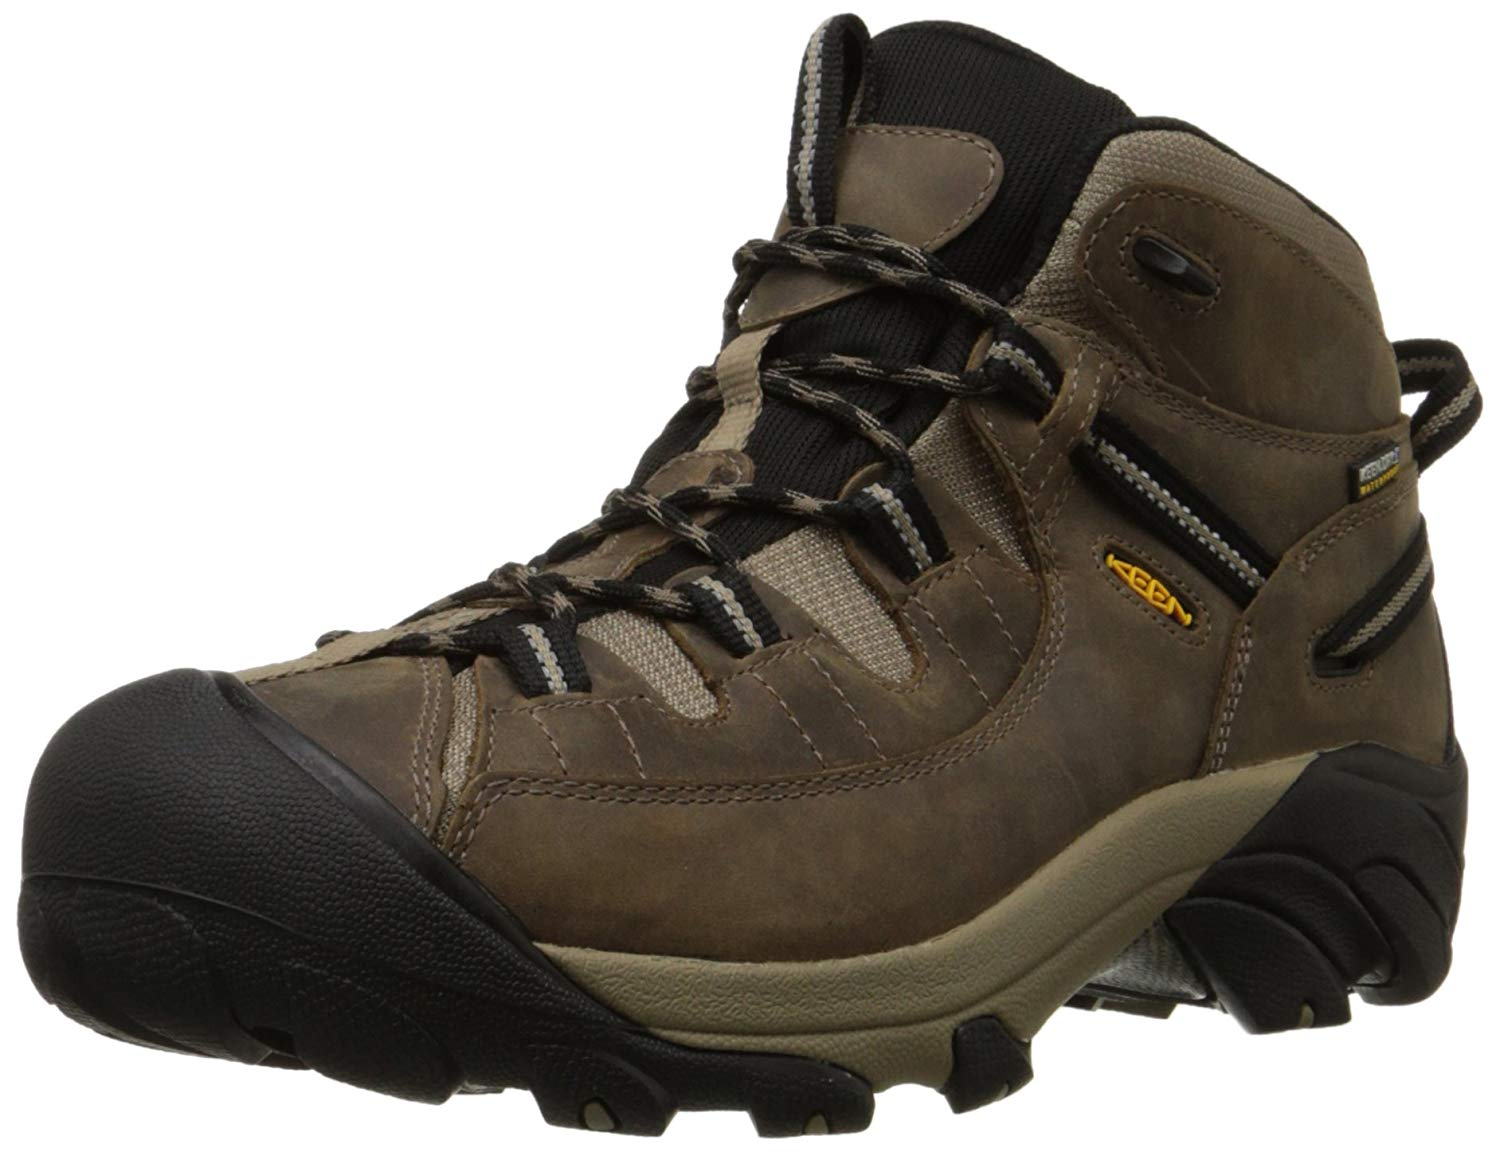 Top 10 Best Hiking Boots Under 100 For Men & Women 2020 Reviews 2